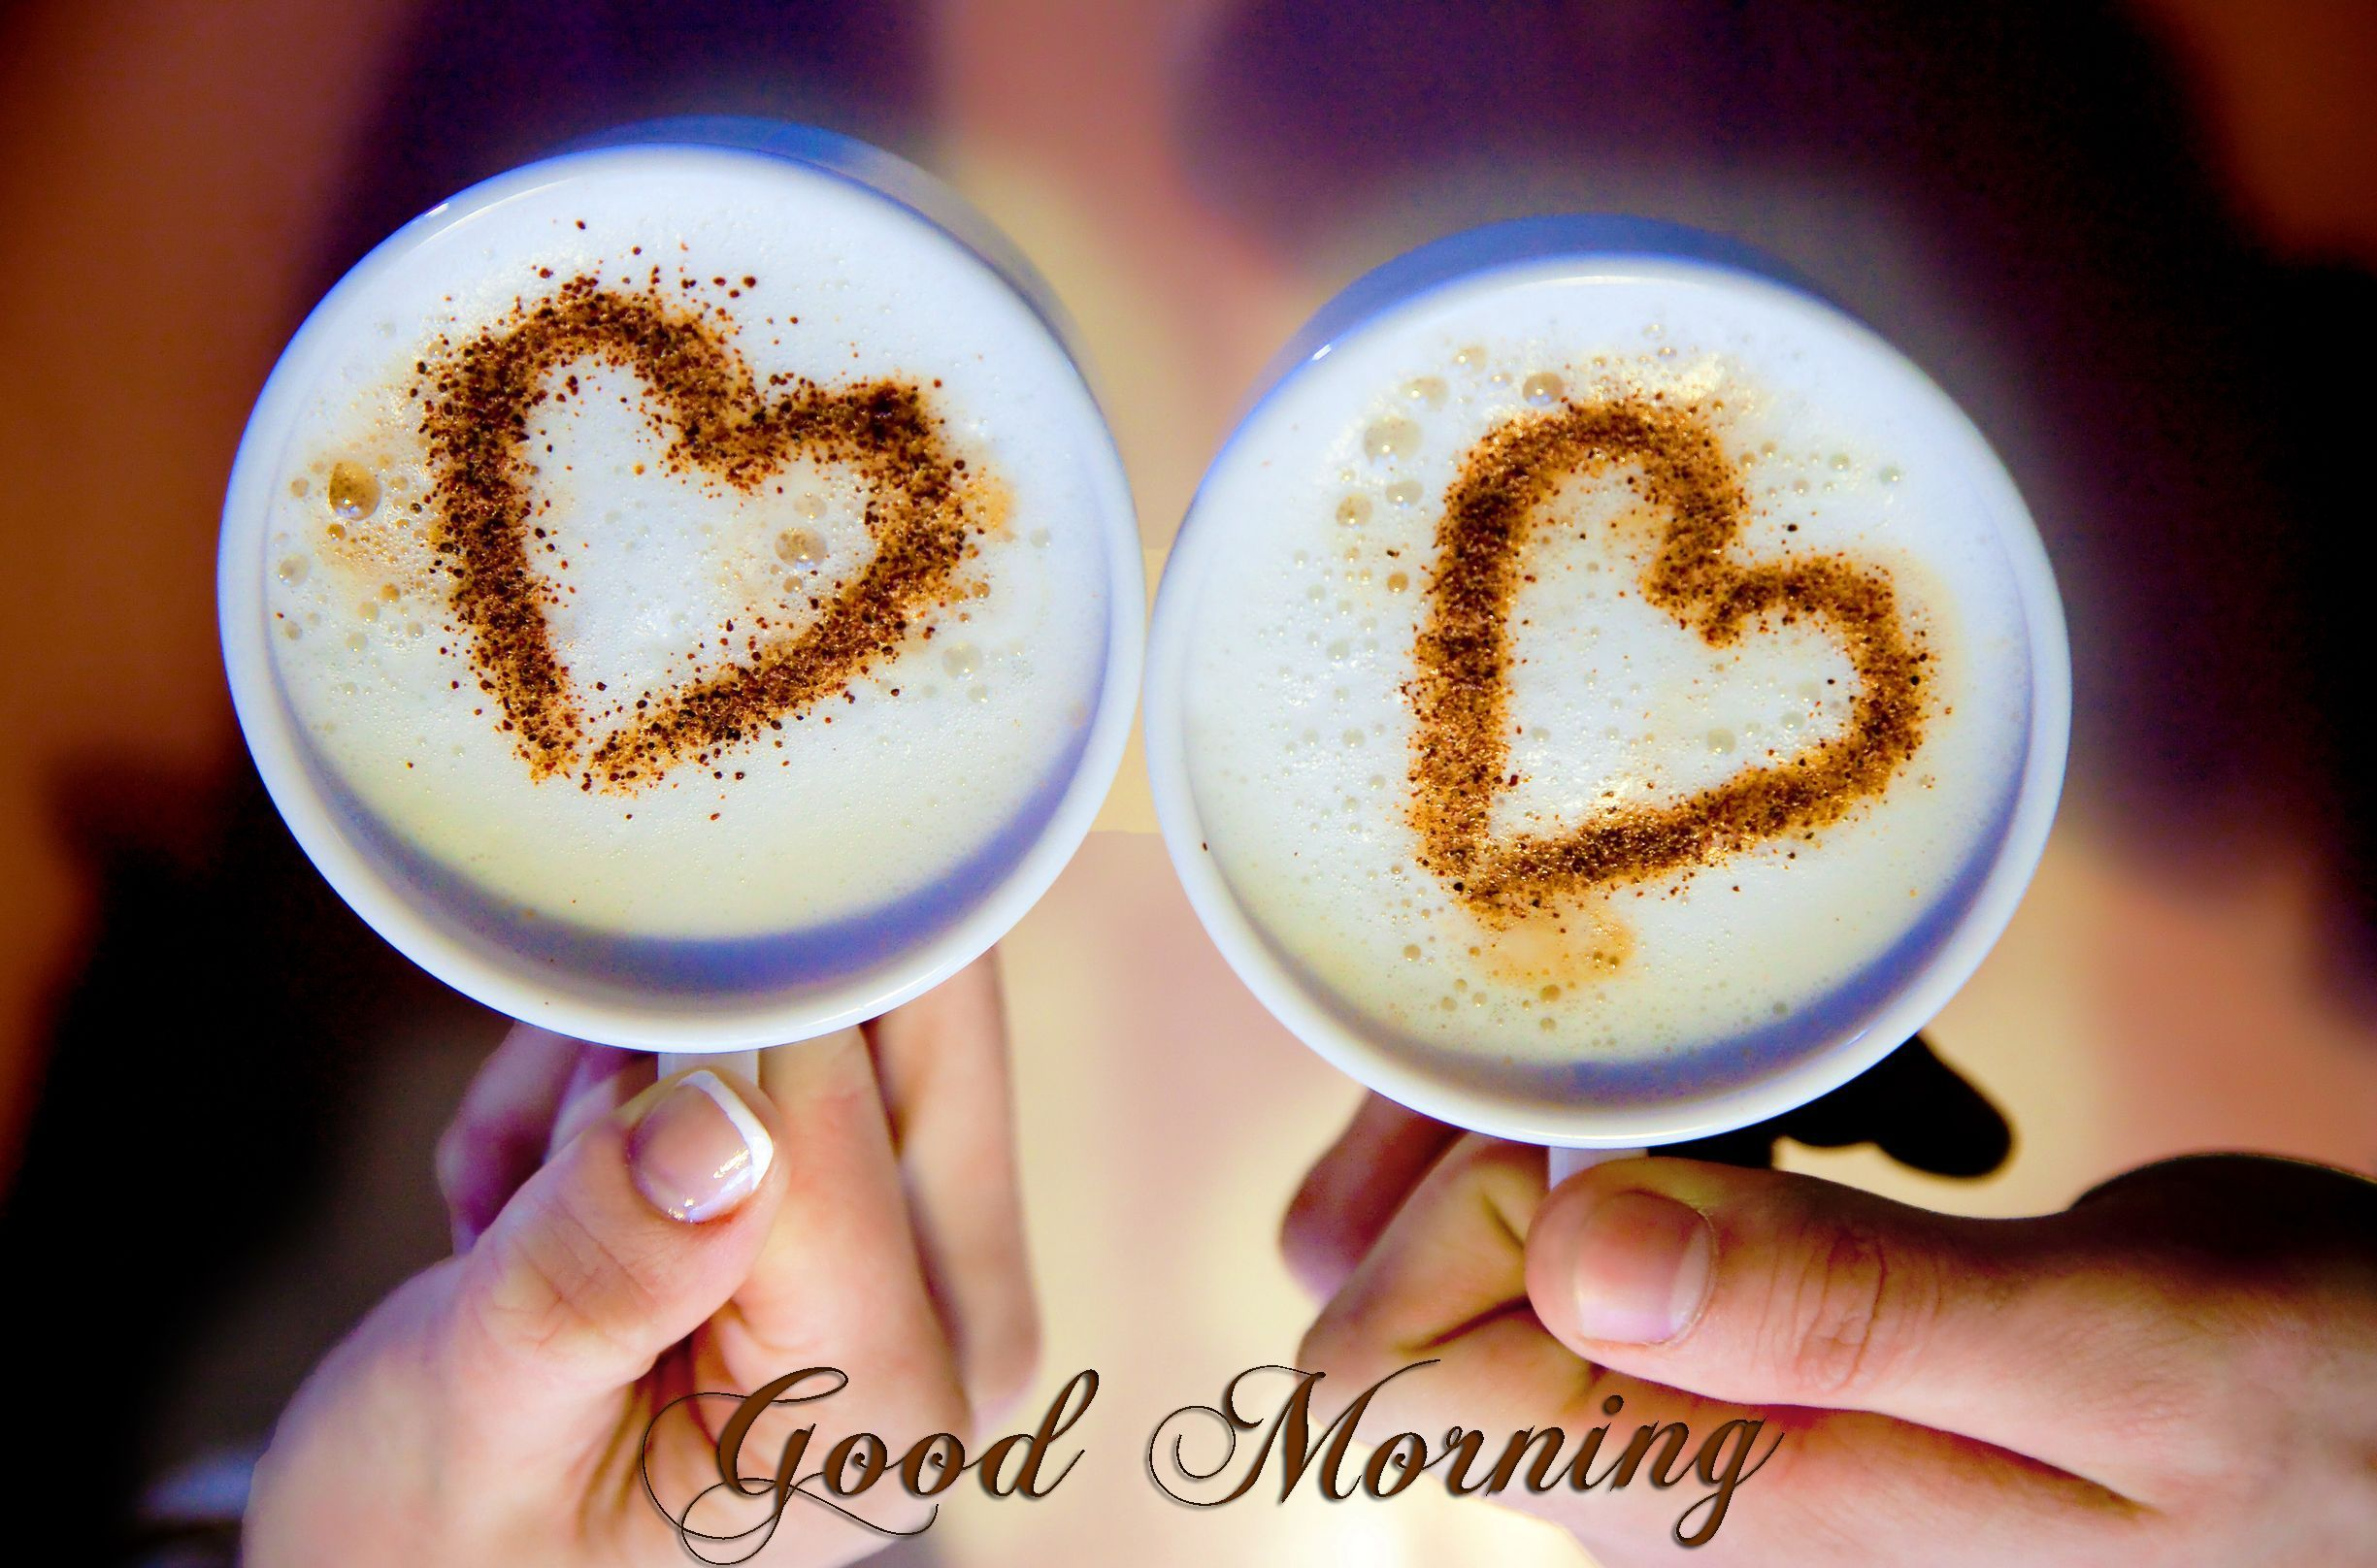 40 Good Morning Coffee Images With Wishes And Quotes With Images